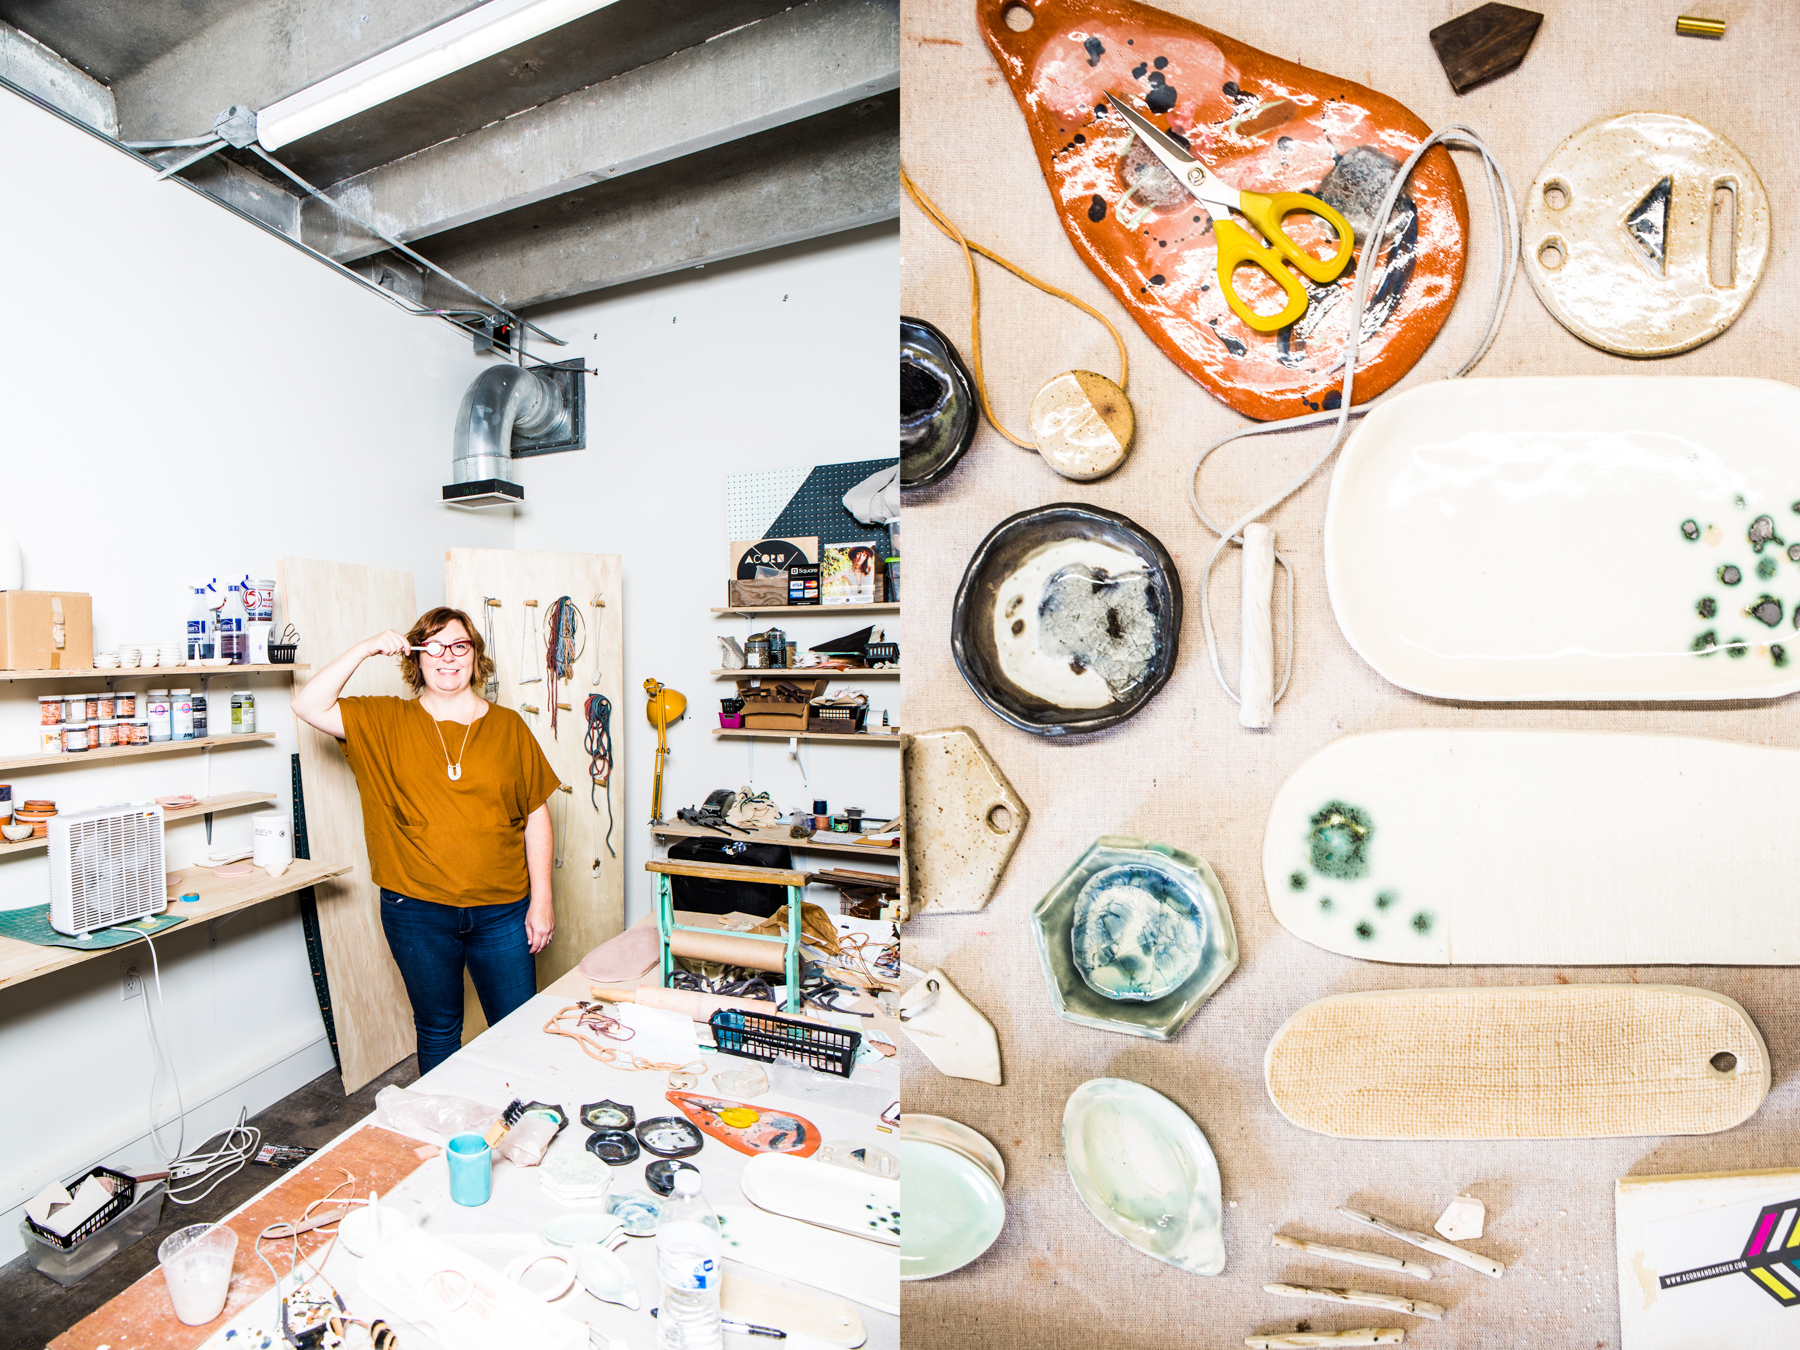 """Carolyn Burgess of Acorn & Archer is a lifelong friend and studio-mate of Jessica Cheatham. Of 1411, she says: """"It's unique to work surrounded by people that you don't actually work with. So many ideas swirling around the halls/rooms each day is awesome."""""""